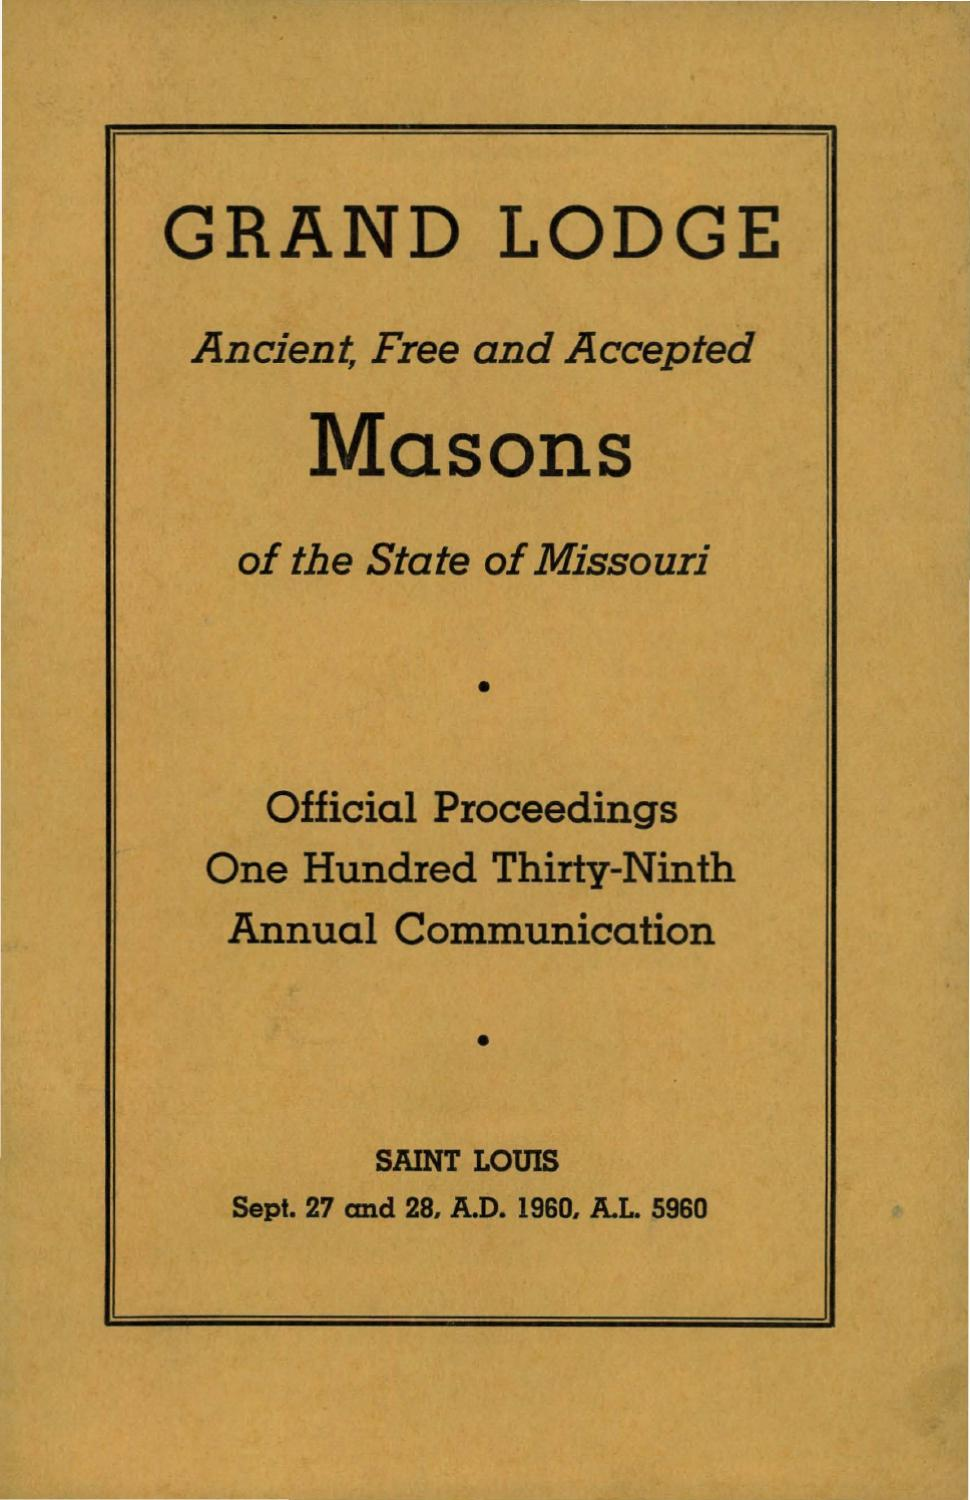 oklahoma masonic lodge essay contest The grand lodge of kansas council of administration approved the recommendation by the public schools committee for the 2017 essay contest topic for kansas junior and senior high school students beginning classes in august 2017: kansas masons have served kansans and kansas communities.